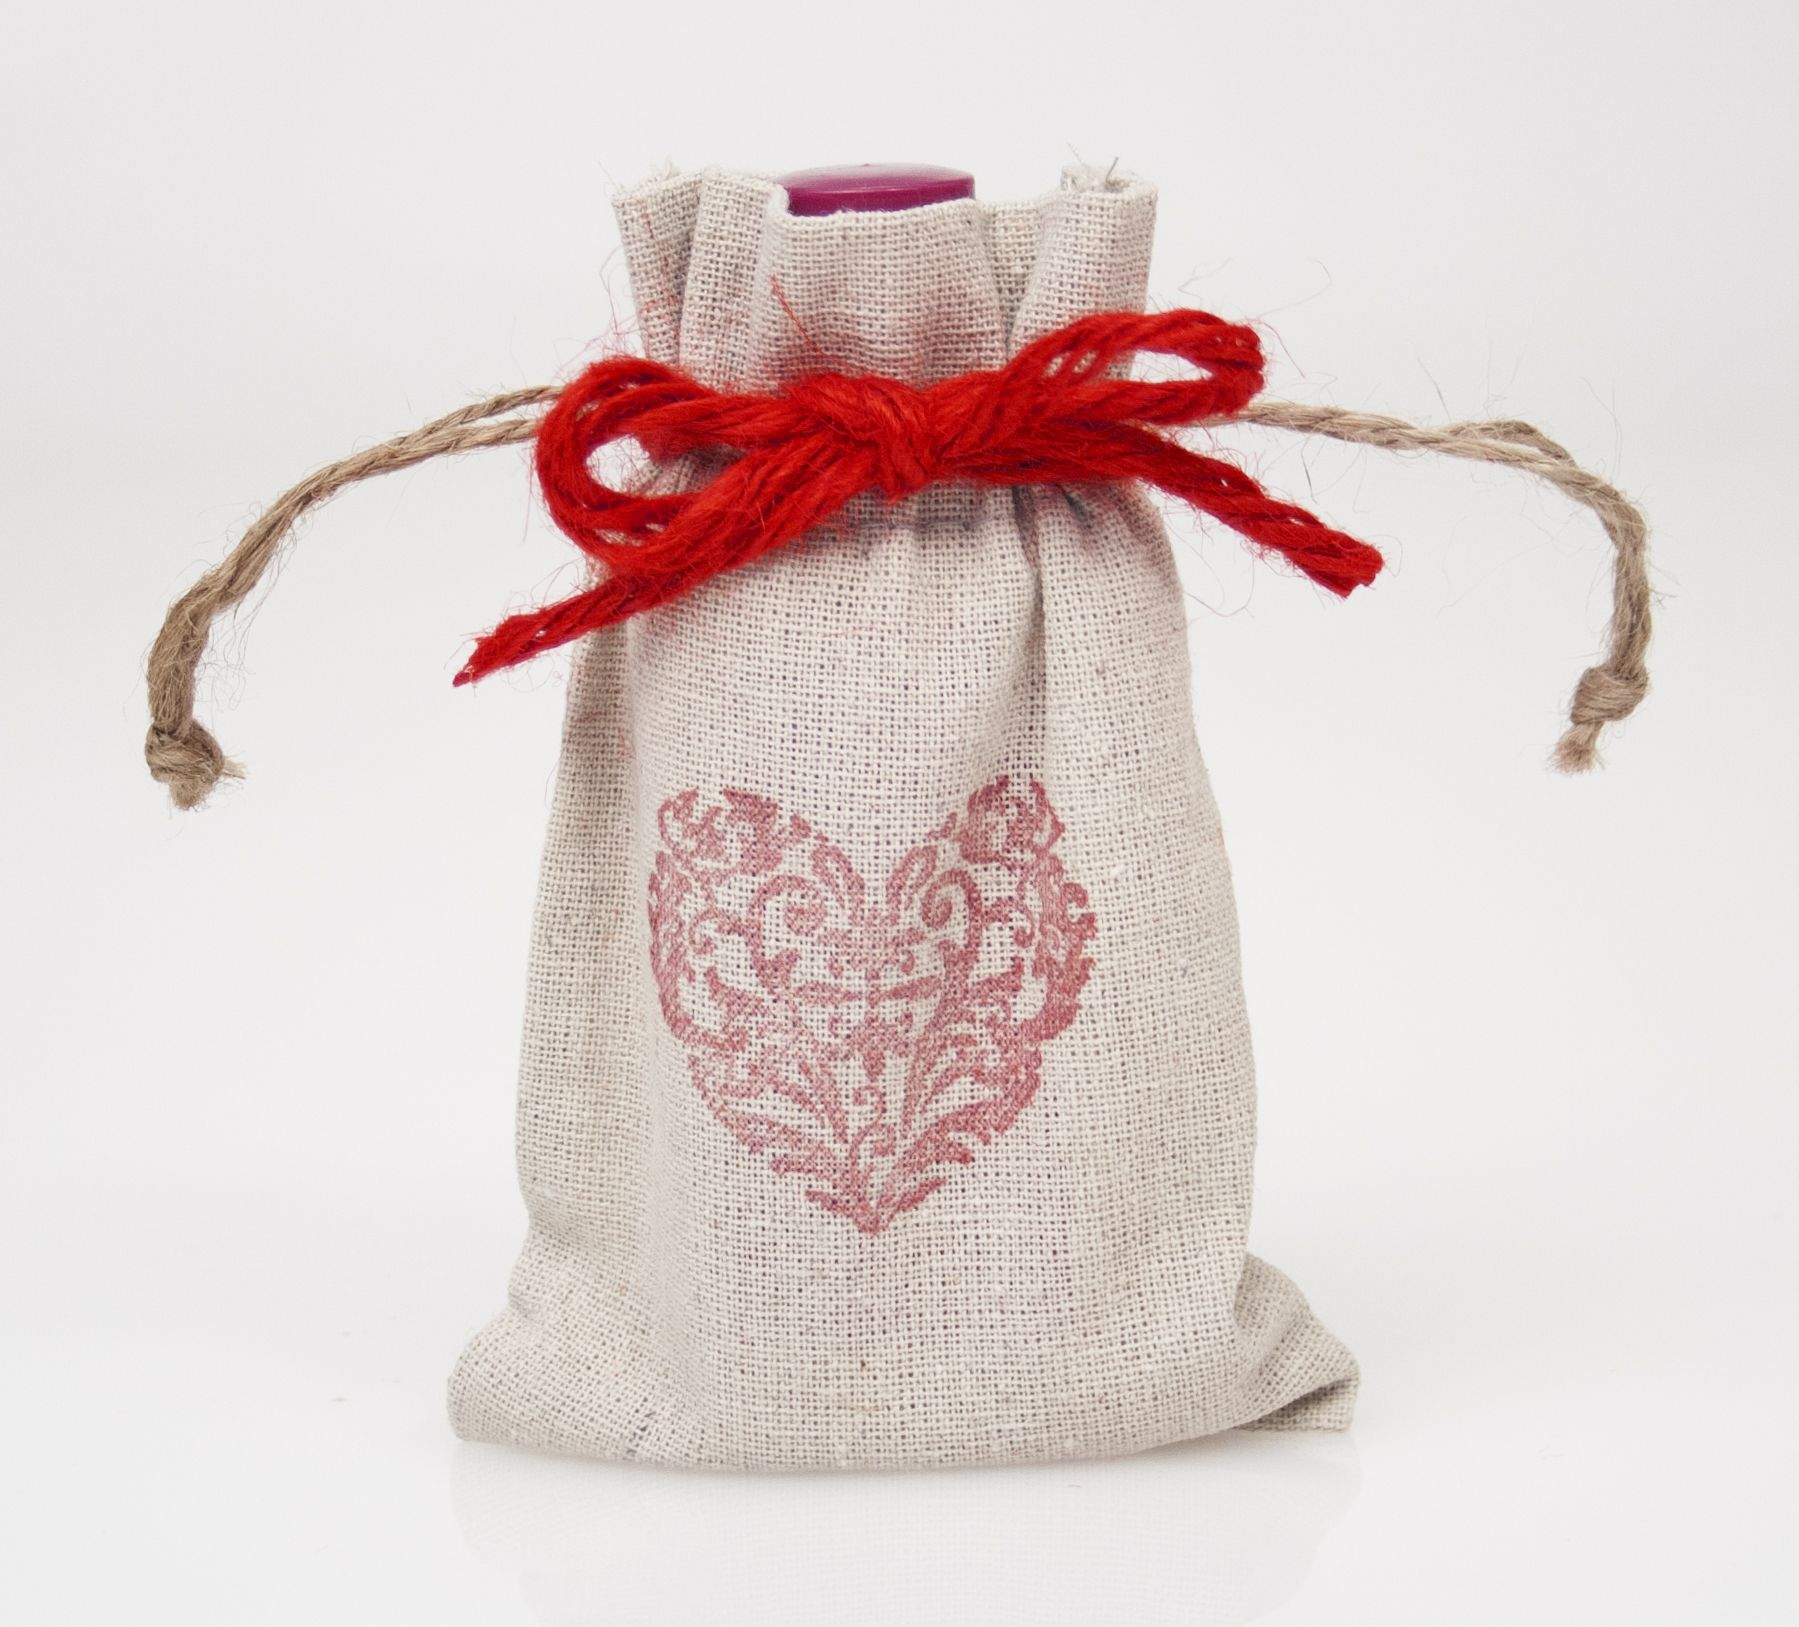 10 sweet packaging ideas for valentines day valentines